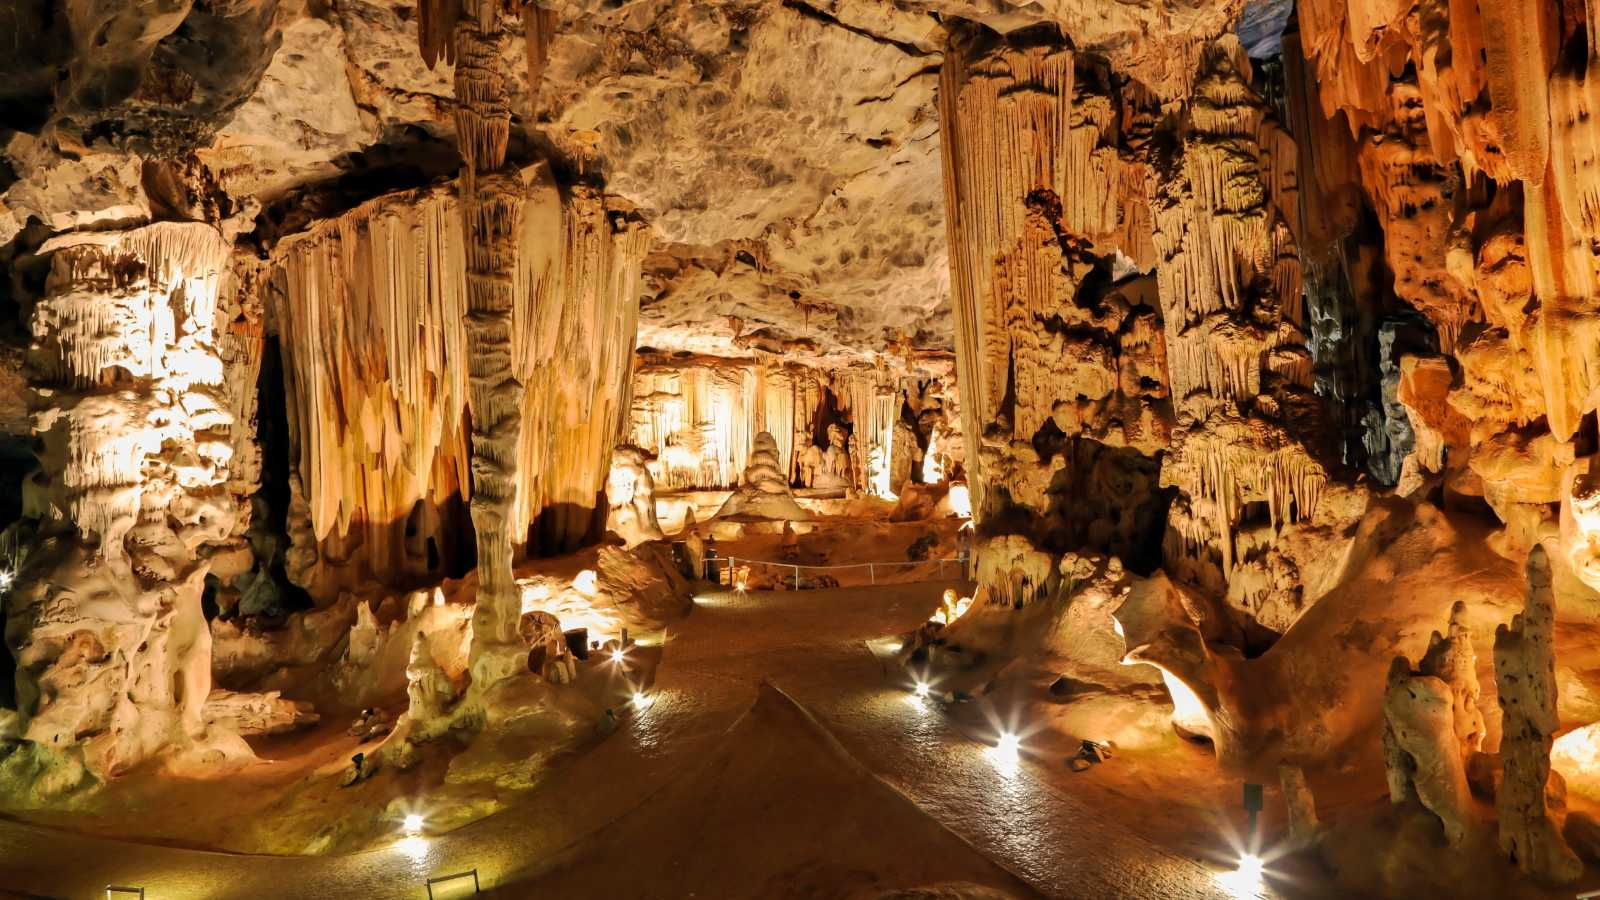 Africa, South Africa, Oudtshoorn, Cango Caves lit up.